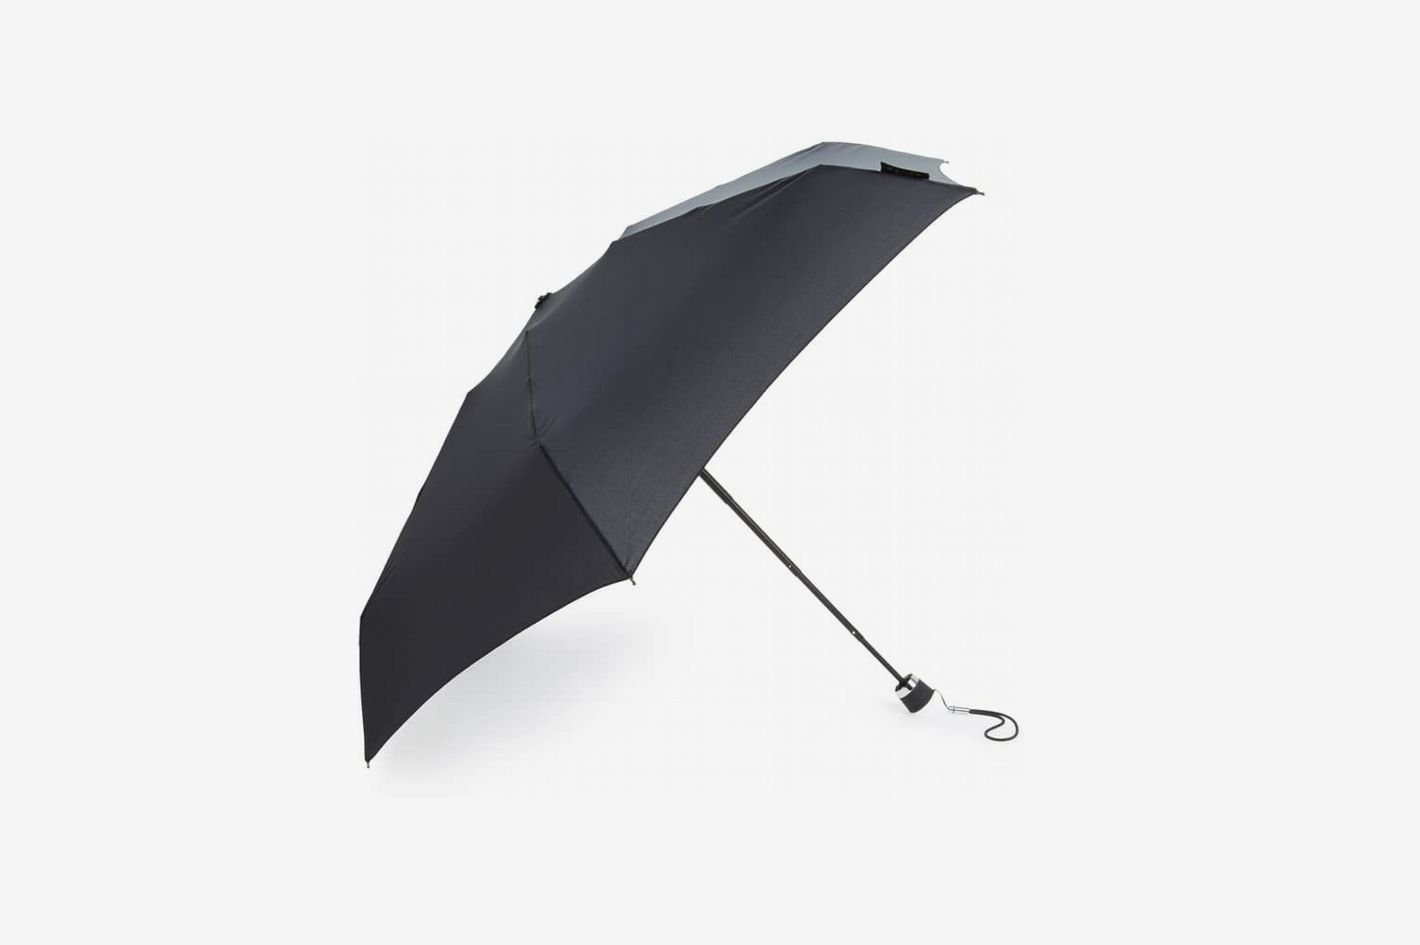 75bf0e5490409 The 37 Best Umbrellas You Can Buy 2019